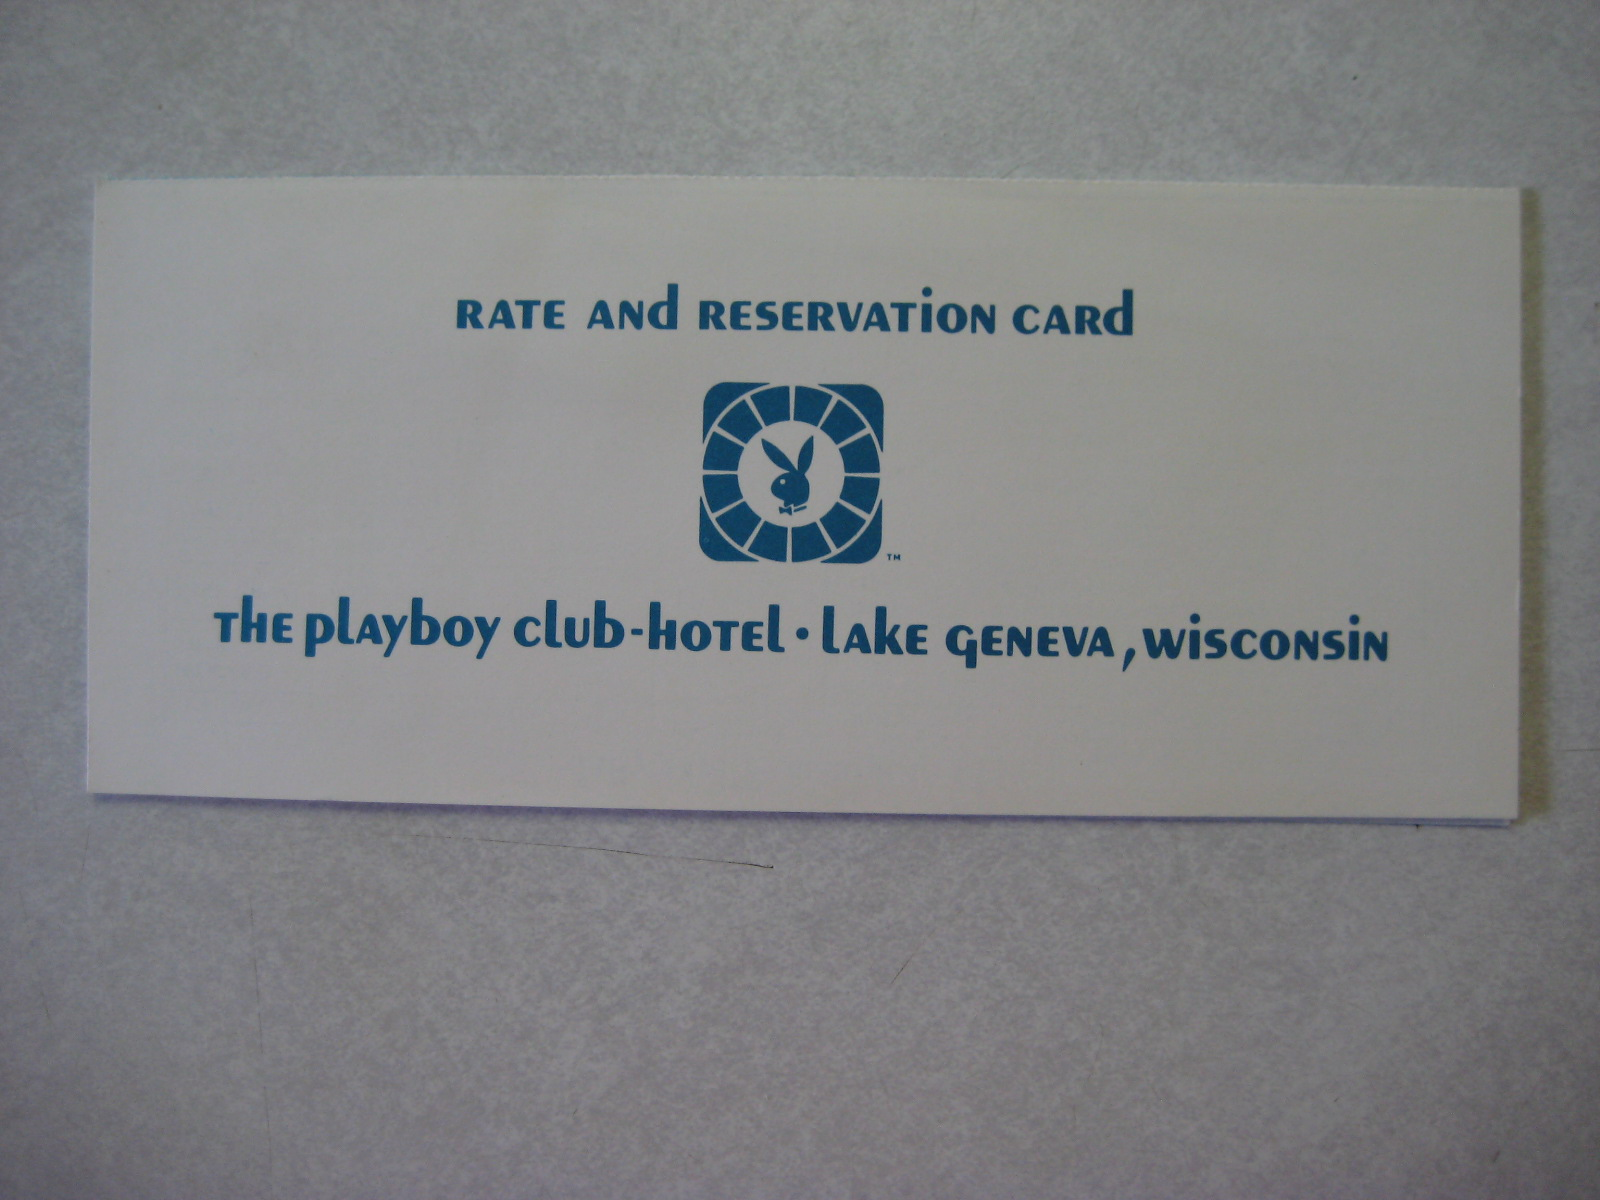 Playboy Club Hotel Lake Geneva Rate and Reservation Card